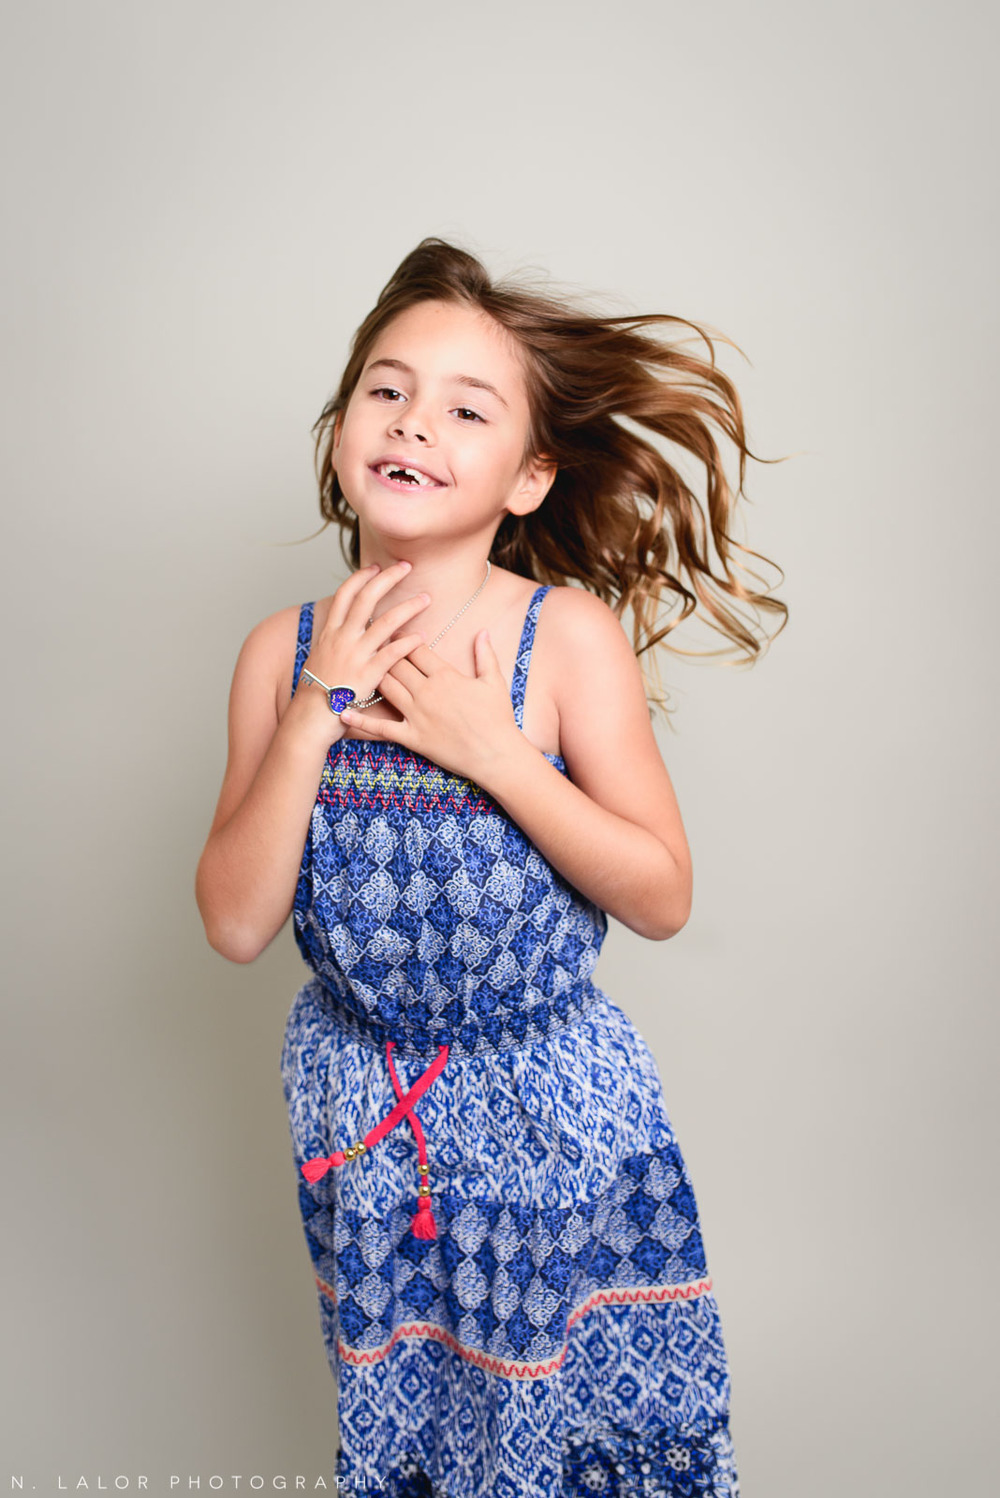 Mid-air. Editorial studio portrait of 6-year old girl by N. Lalor Photography in Greenwich, Connecticut.